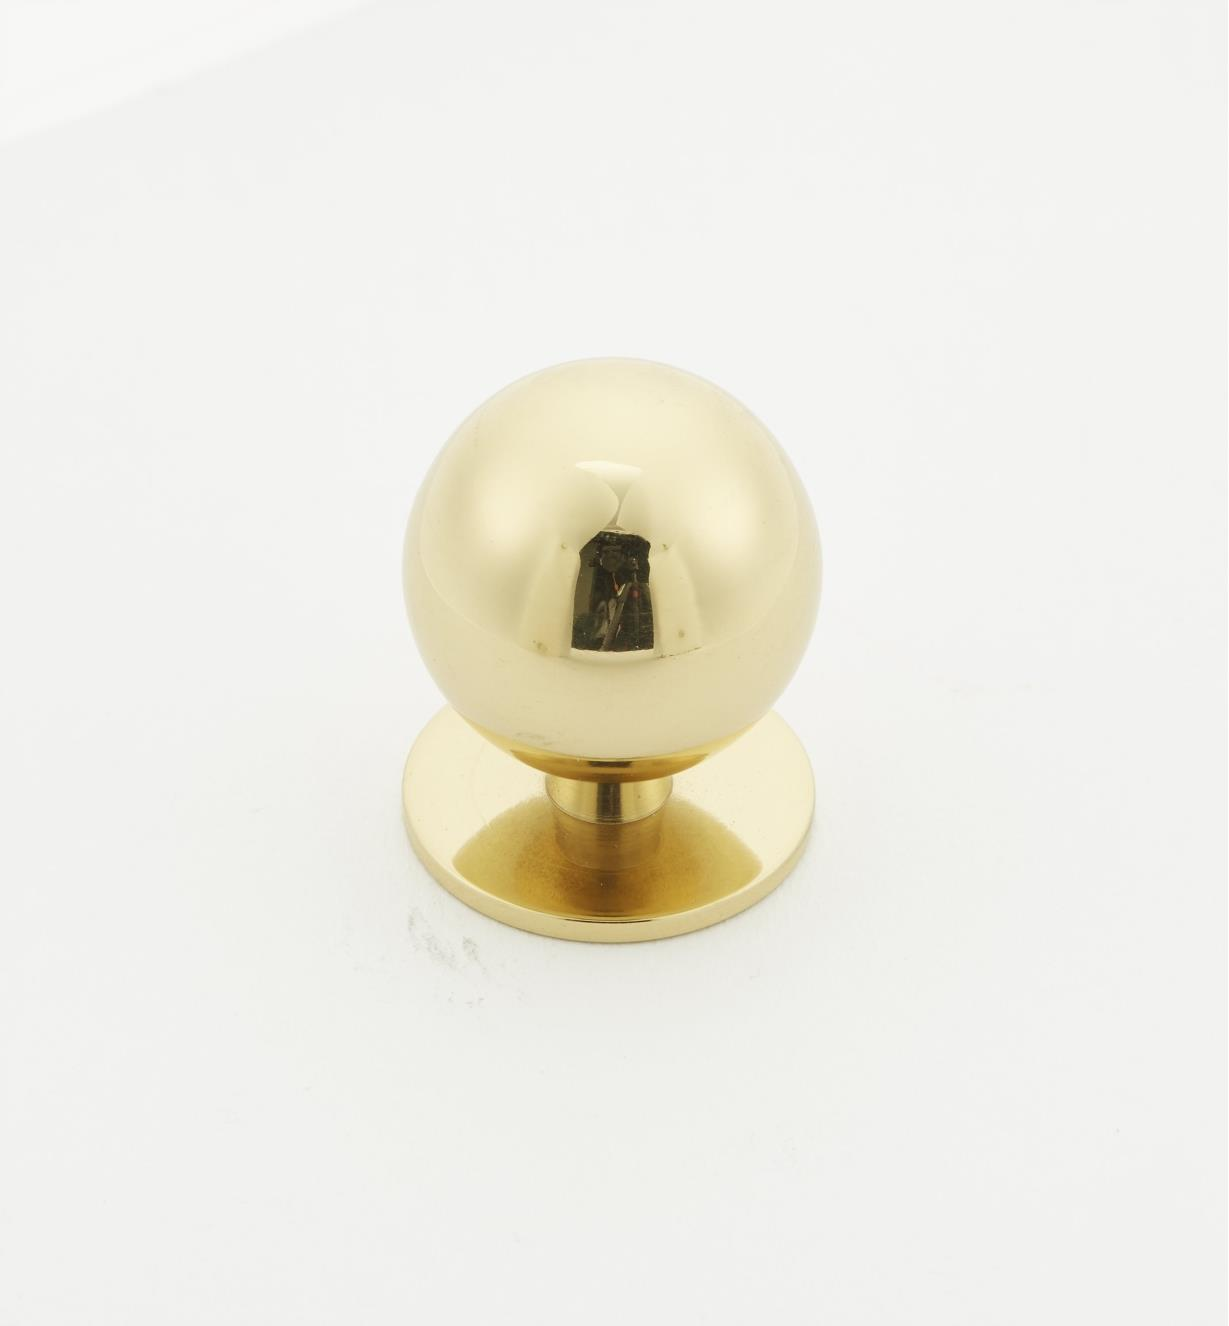 00W5823 - 25mm x 32mm Brass Knob